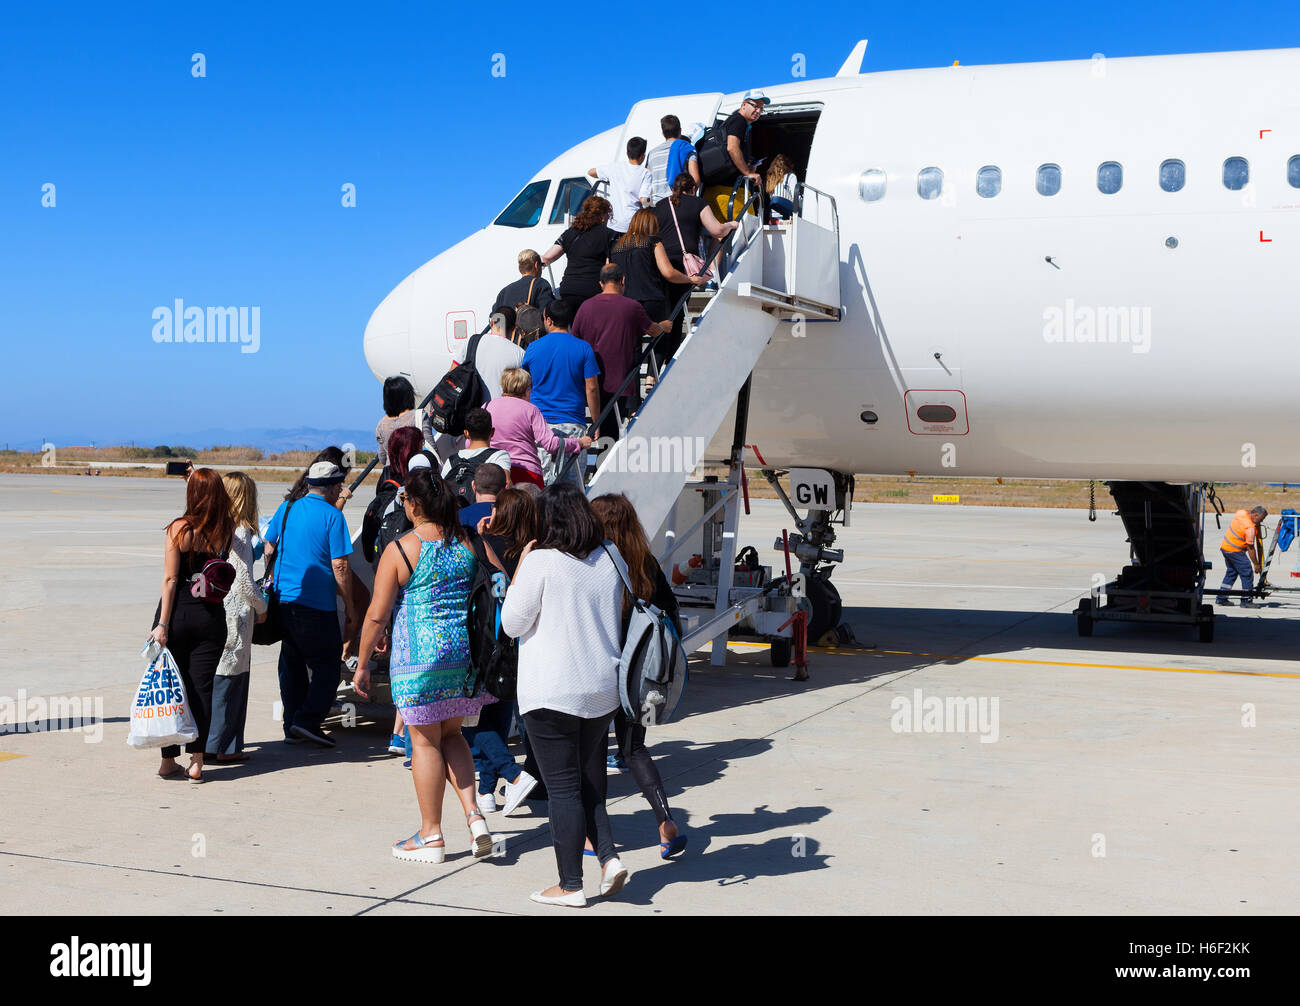 Passengers boarding a commercial jet plane at Rhodes Diagoras international airport. - Stock Image